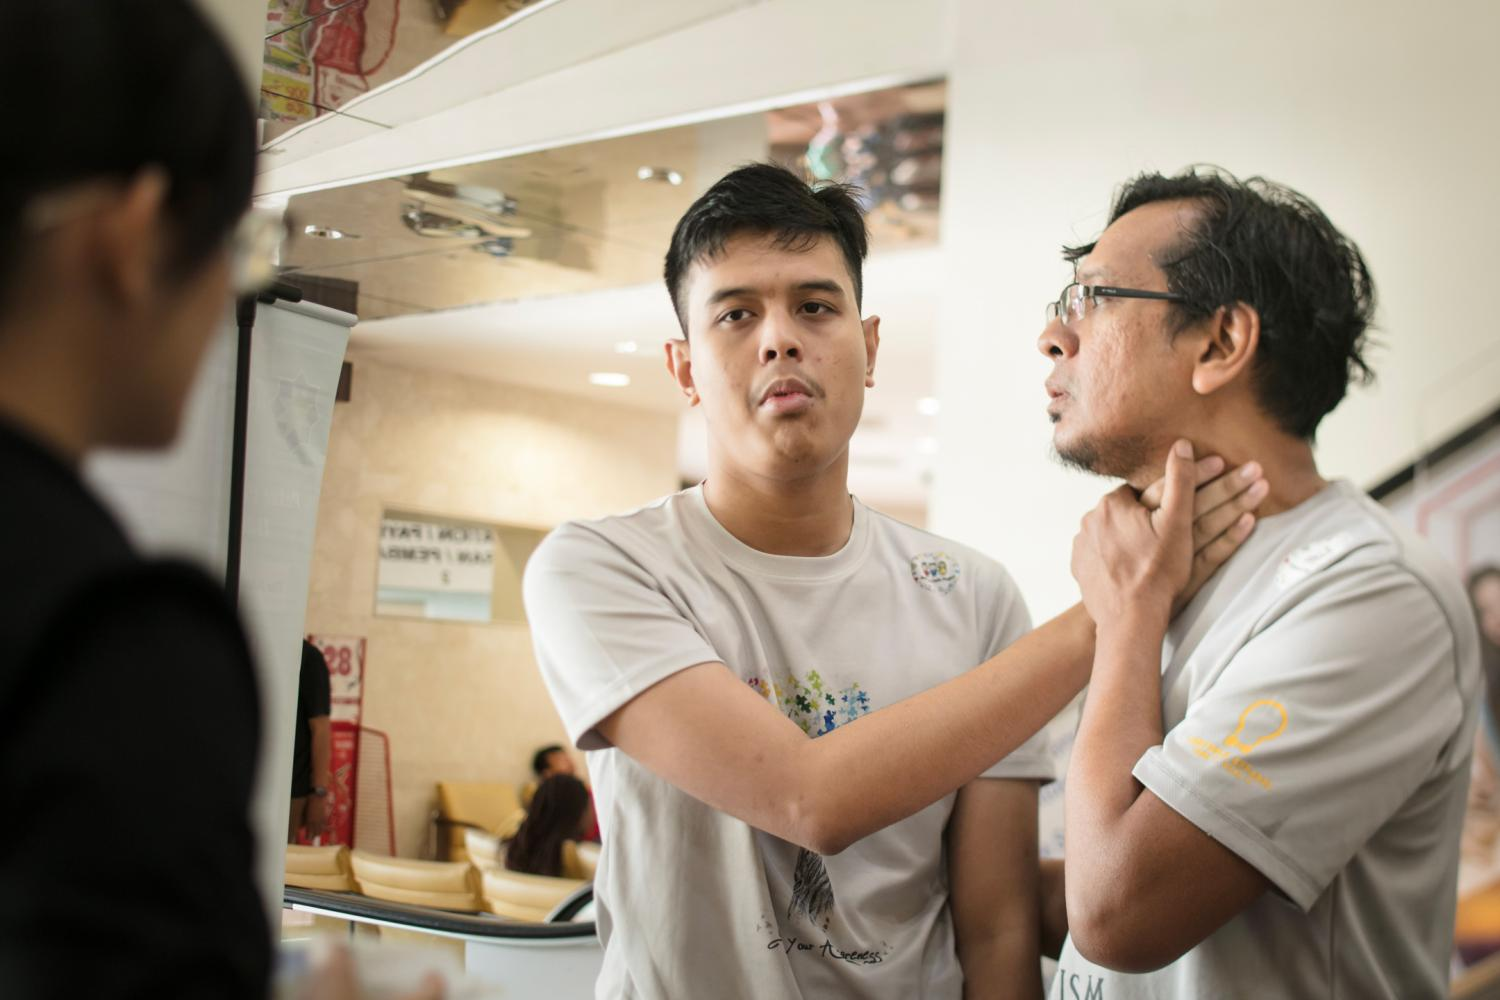 When talking to customers, Adli helps Luqman regulate the volume of his voice by letting him feel the vibration from his vocal chords.